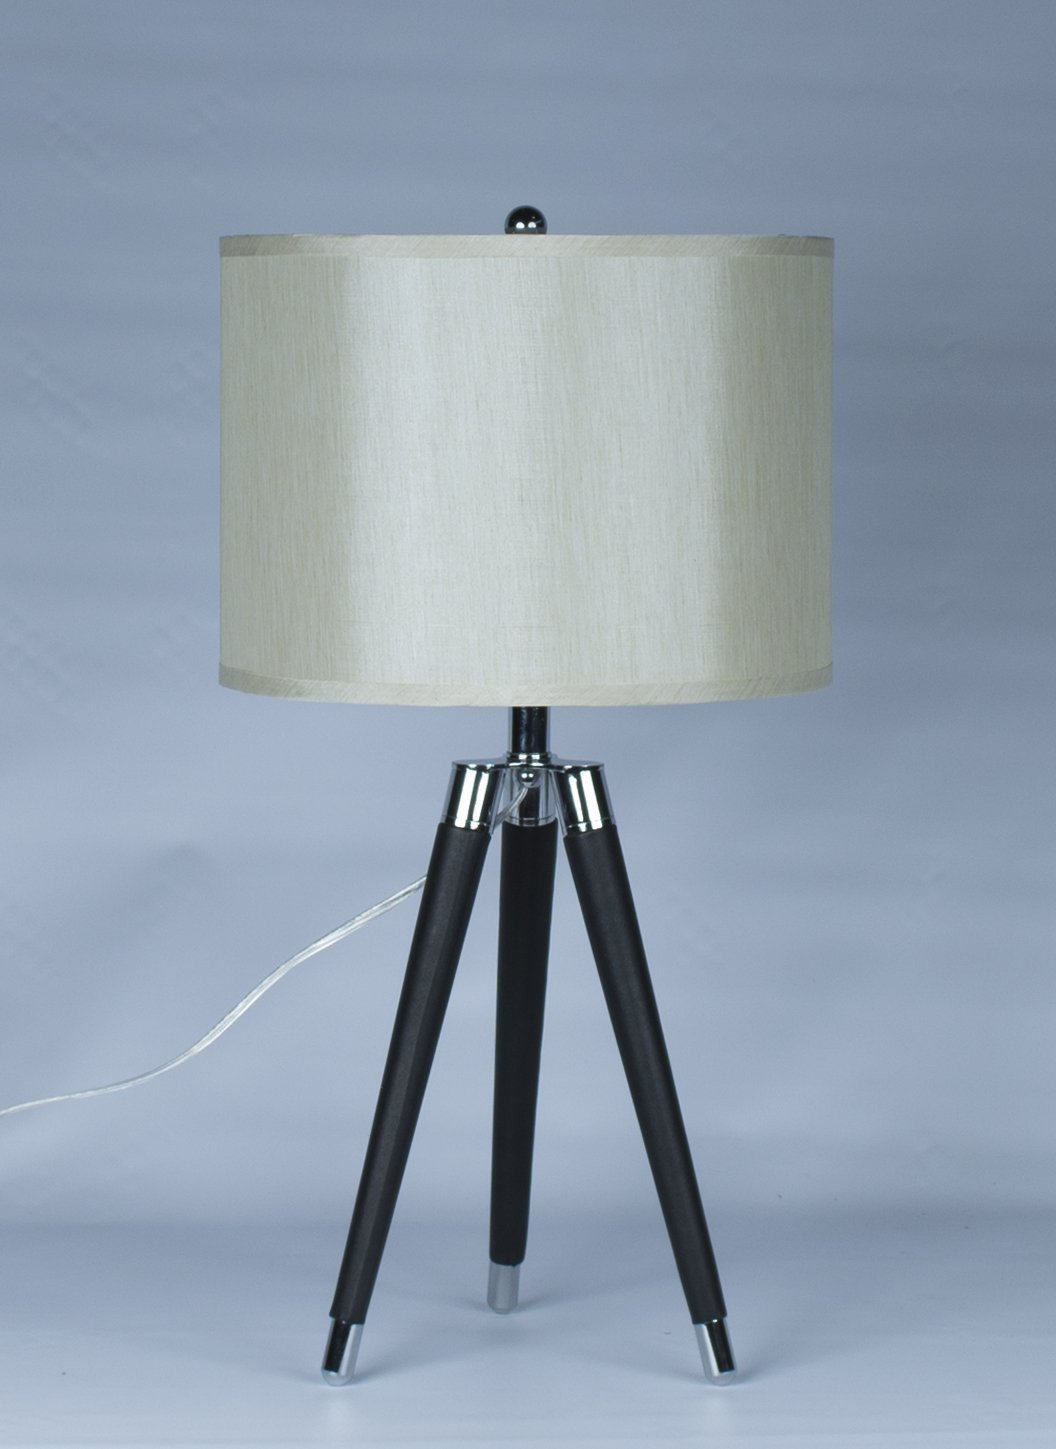 Black Mid Century Modern Tripod Leather & Chrome Table Lamp with Drum Hardback Shade